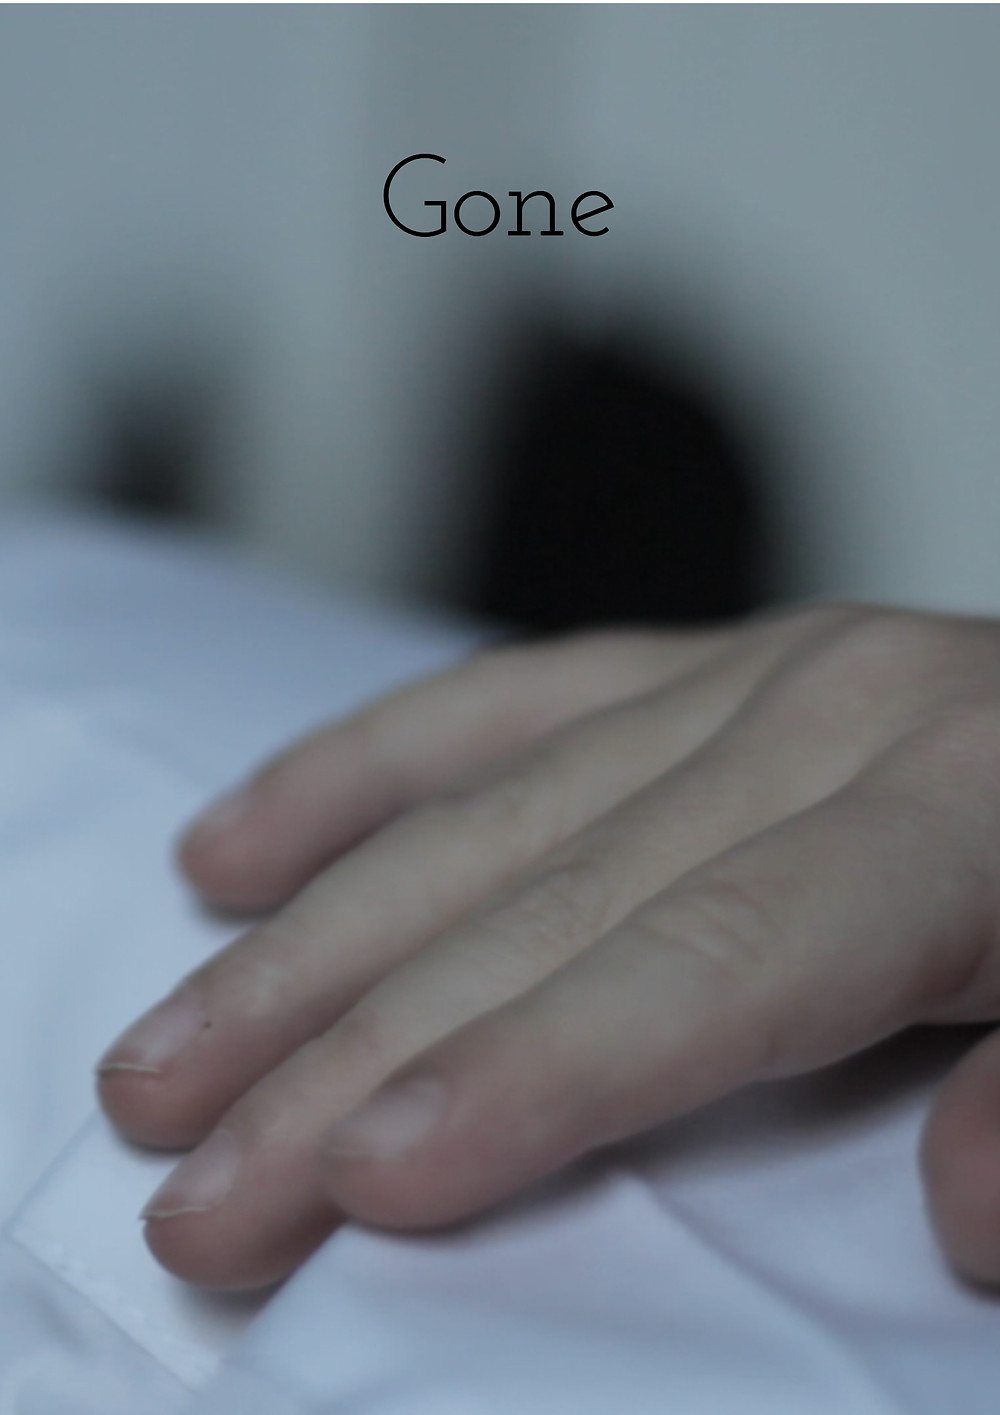 Gone short film review